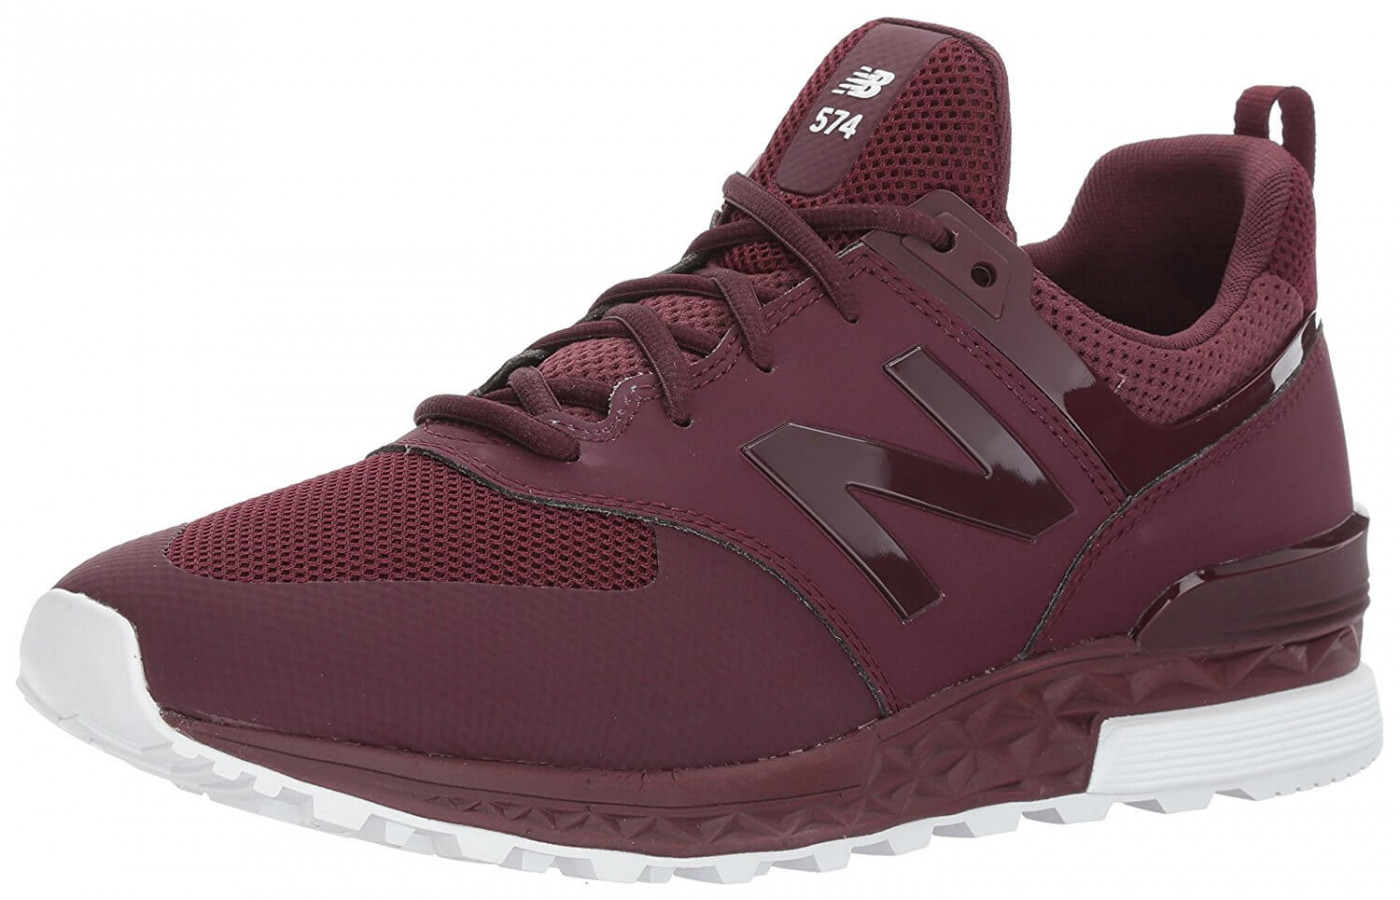 a628db6d823 New Balance 574 Sport. The 574 Sport is available in a wide range of color  options for men and women ...